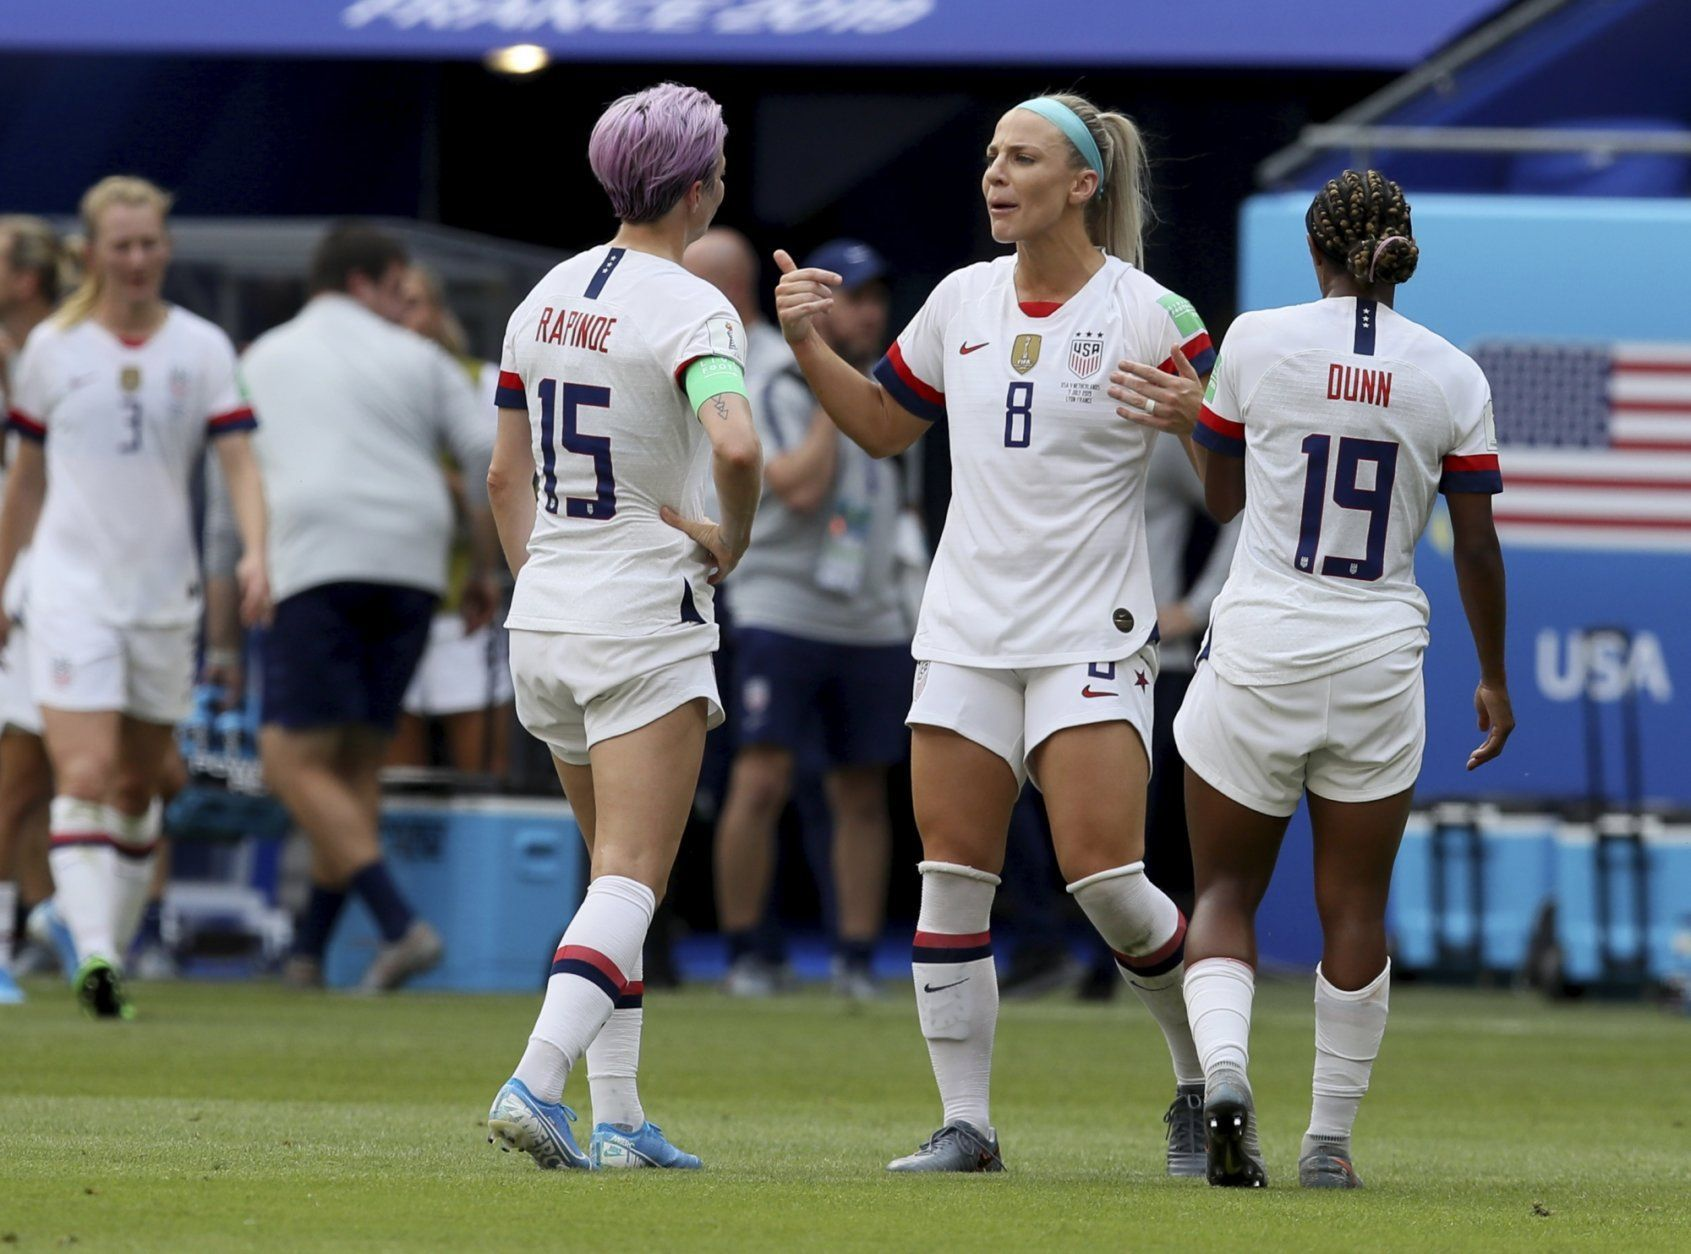 United States' Megan Rapinoe, left, talks to United States' Julie Ertz, center and United States' Crystal Dunn during the Women's World Cup final soccer match between US and The Netherlands at the Stade de Lyon in Decines, outside Lyon, France, Sunday, July 7, 2019. (AP Photo/David Vincent)